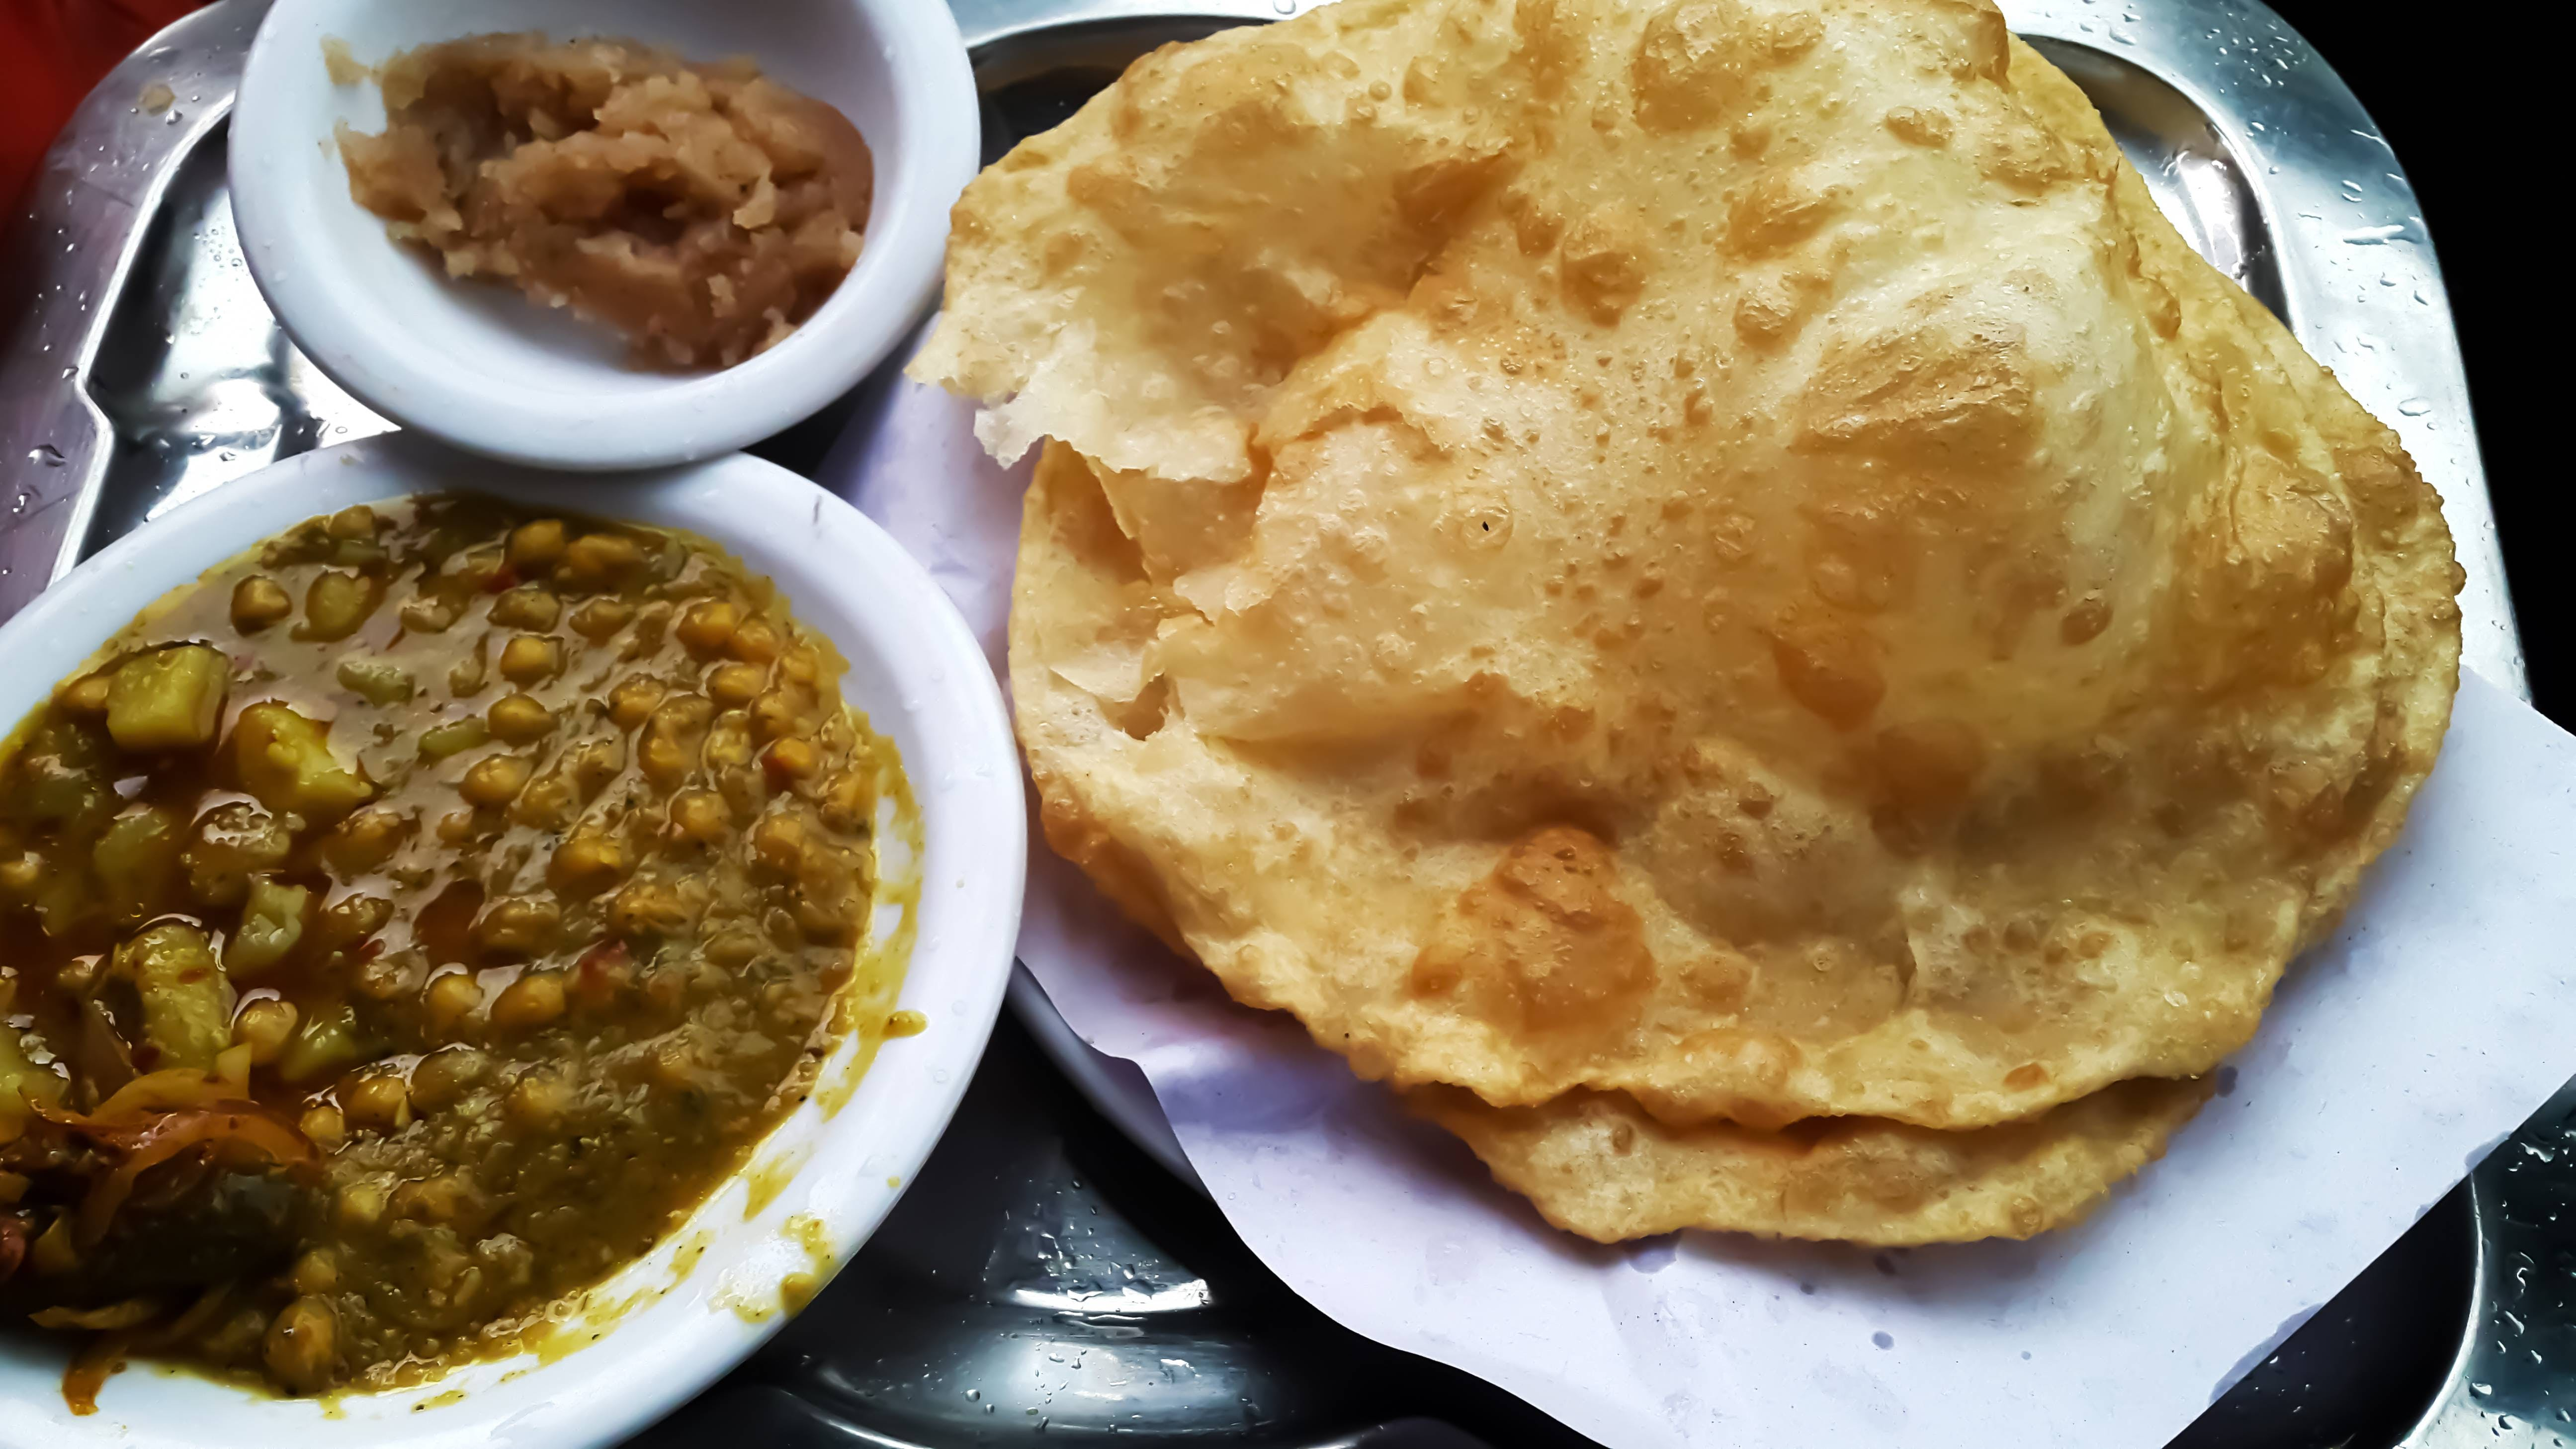 CHANY PATHORY IS FAMOUS BREAKFAST AND EATEN AS SNACK IN LAHORE